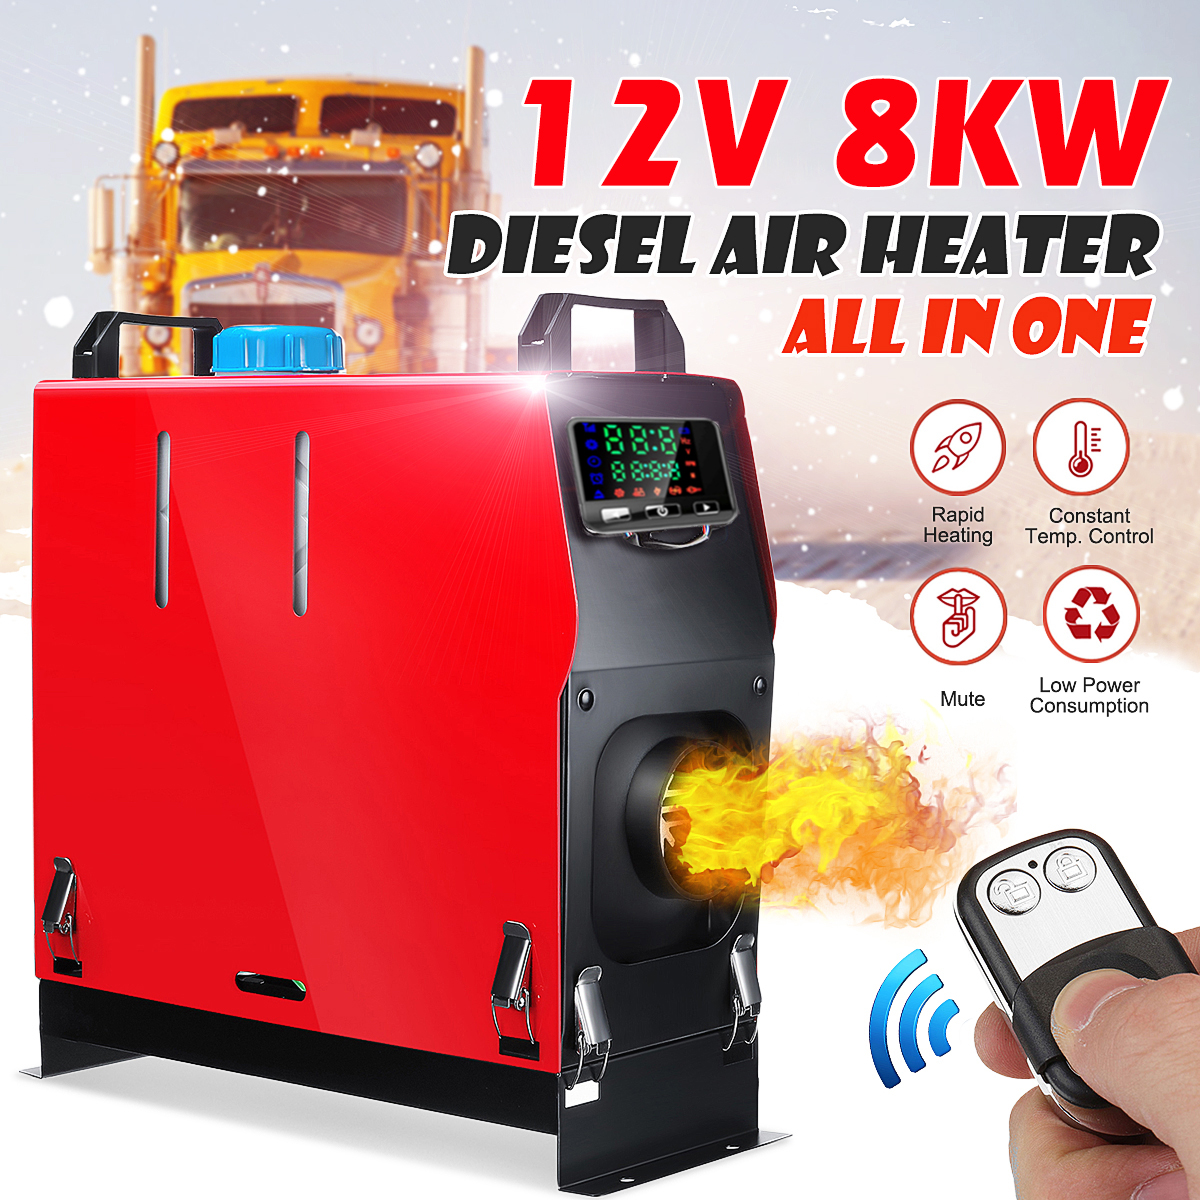 Fast Heating LITTLE TREE 12V 5KW Diesel Air Heater All In 1 Portable Diesel Heater 4 Holes Parking Heater with Remote Controller